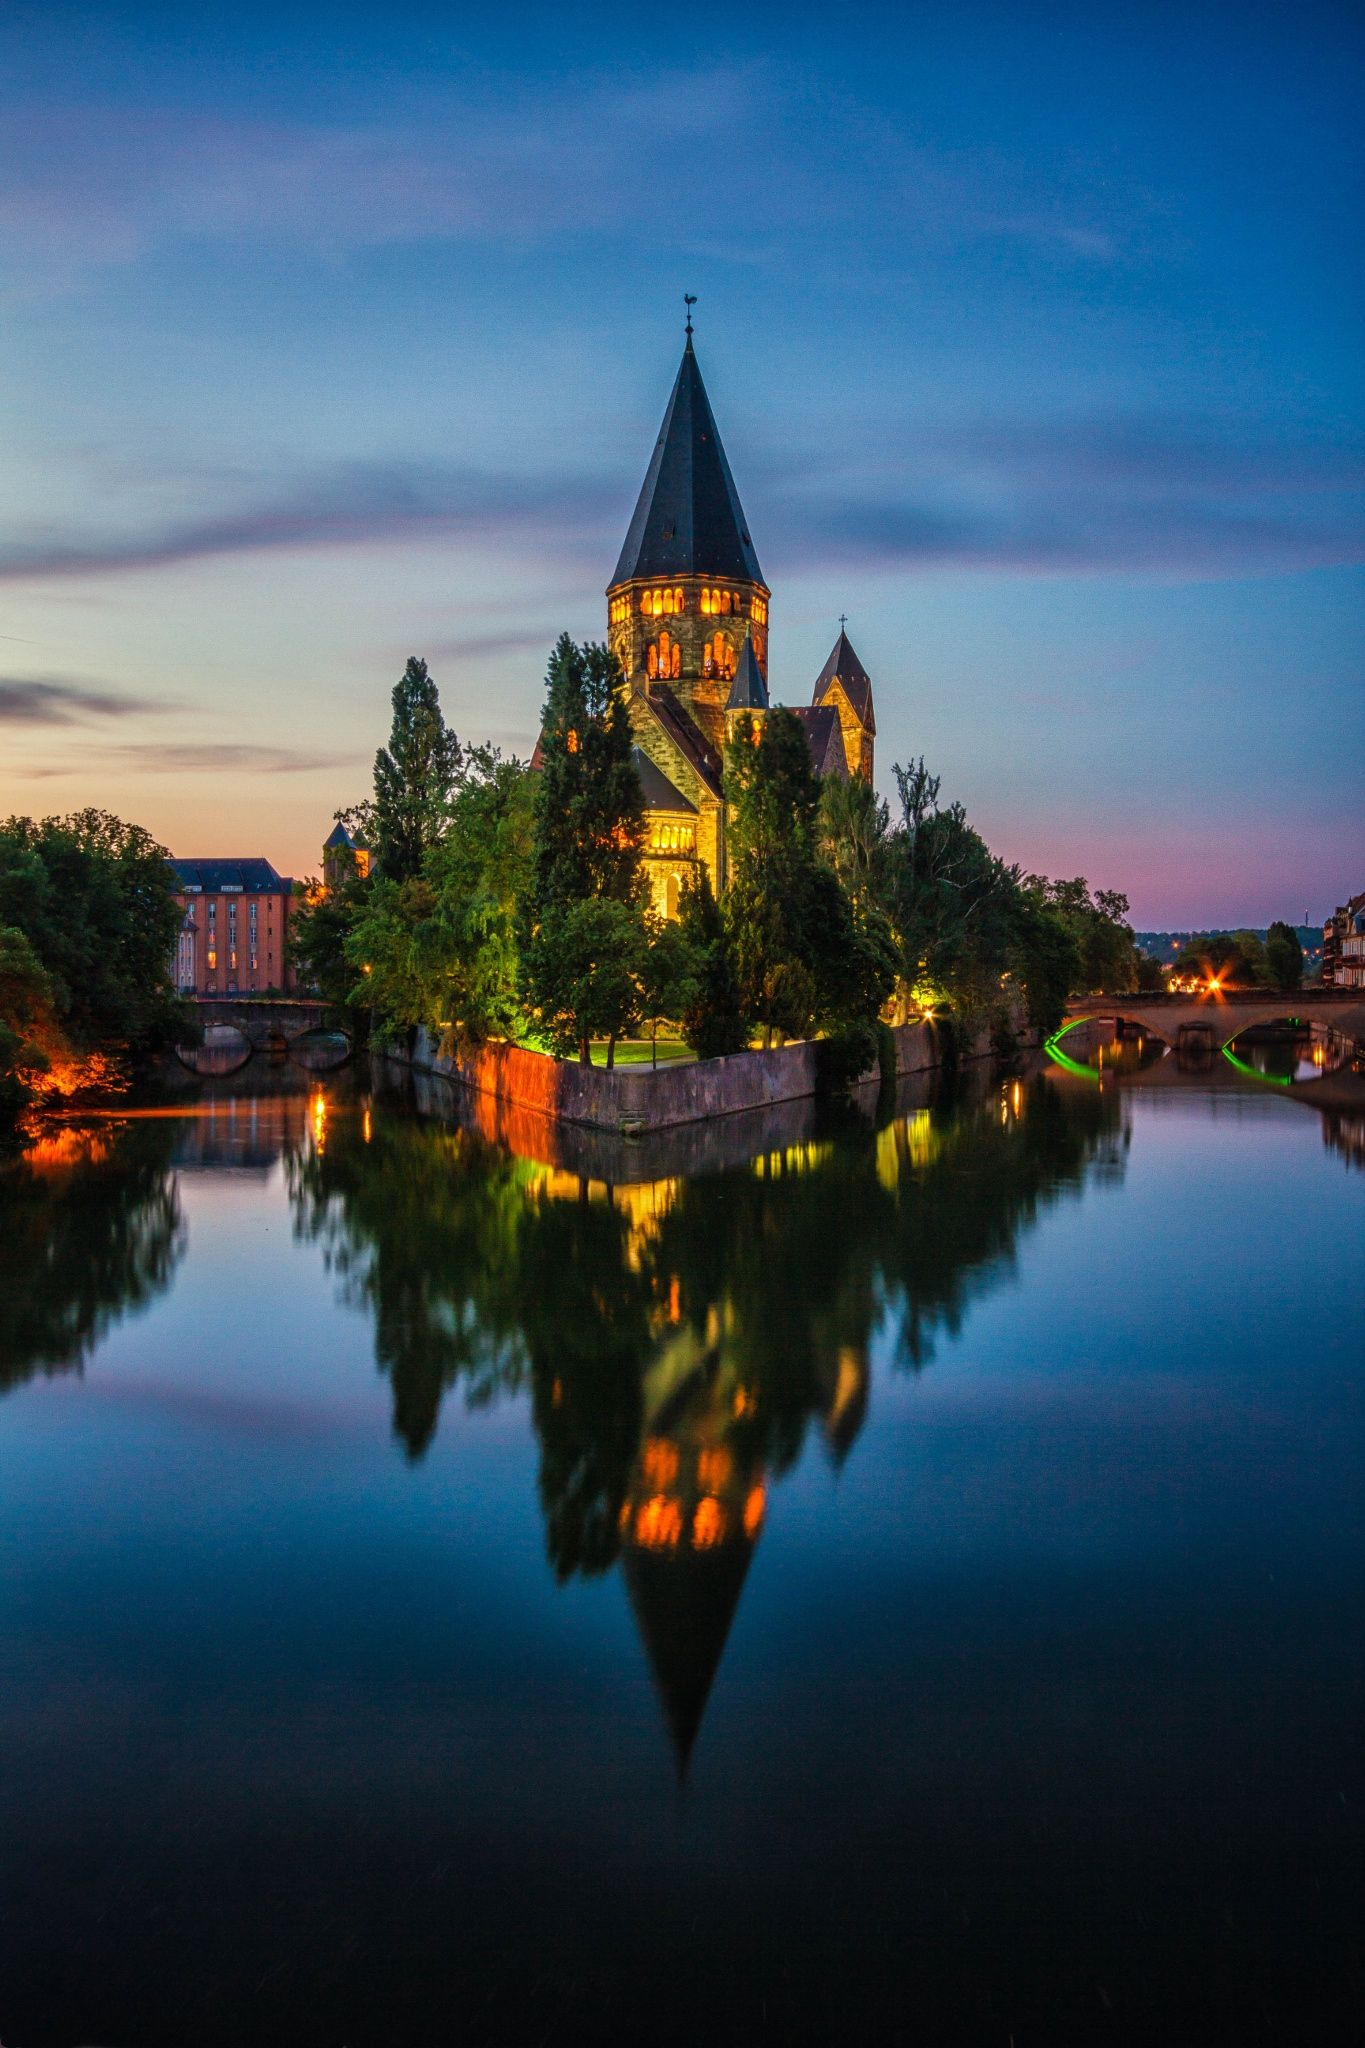 Metz, France by bisignano fabrice